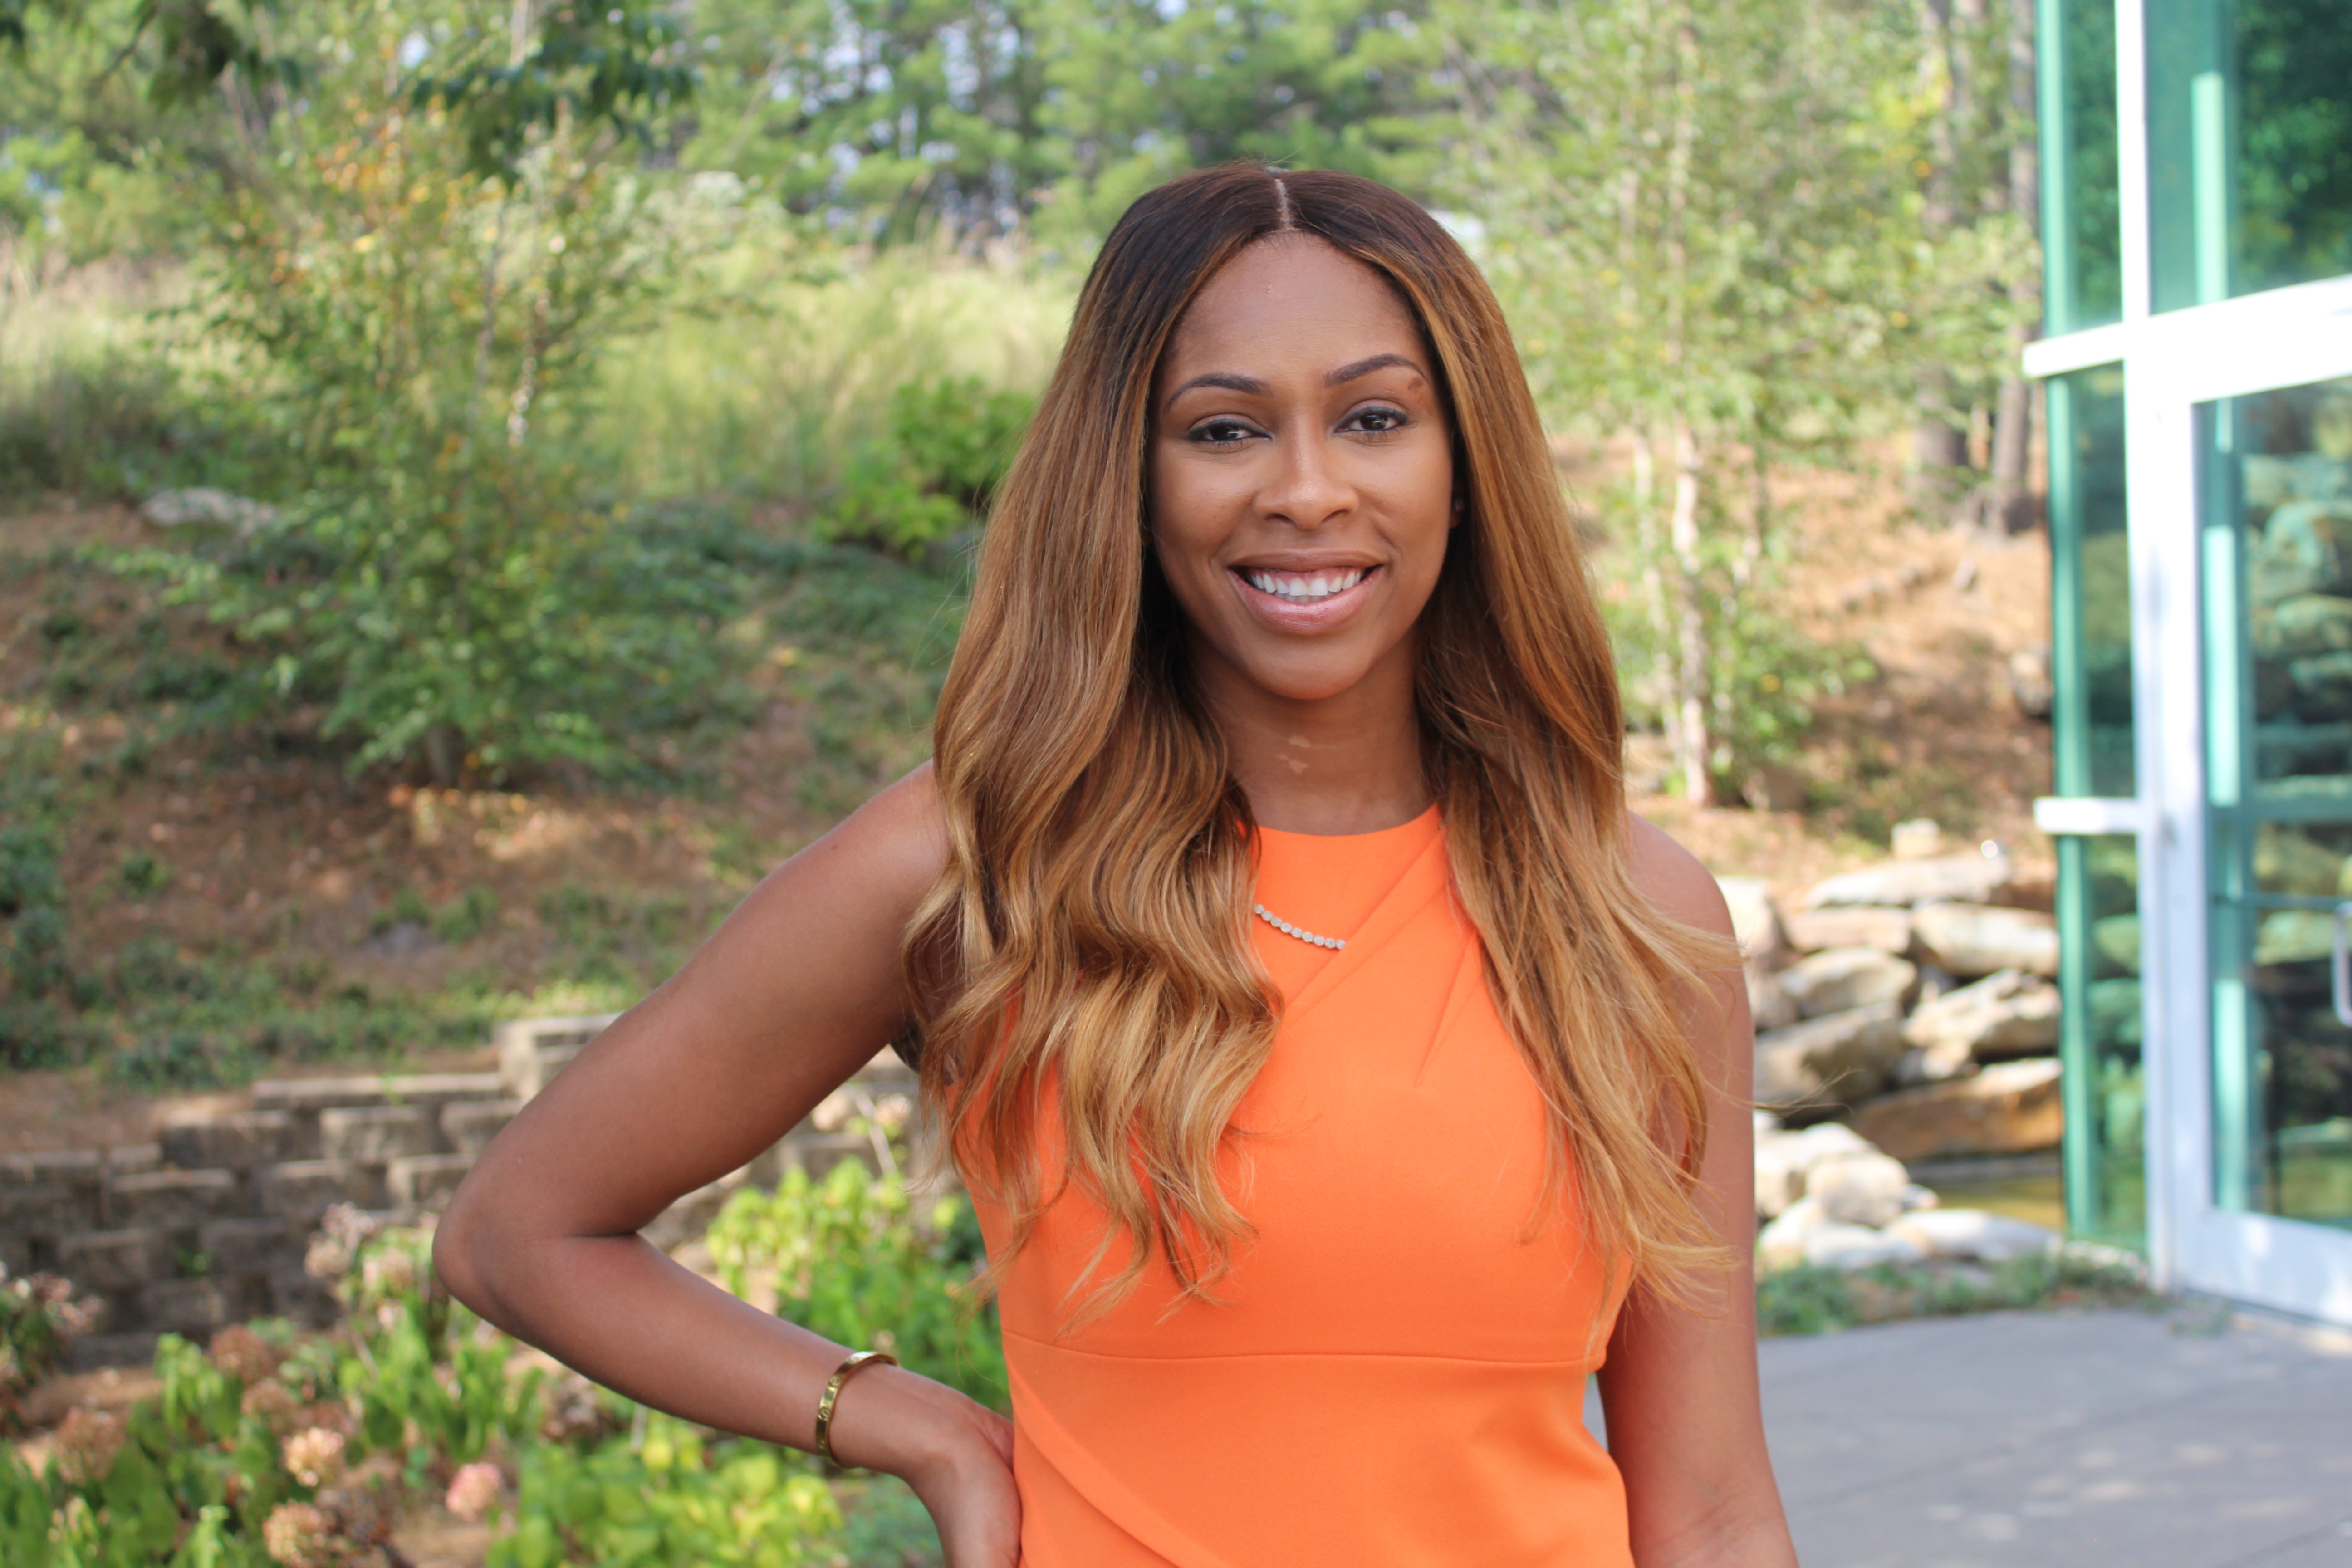 Amber Jones's Brother, a Pro Athlete, Had Bad Credit Like Many. How Her Company Aims to Help.